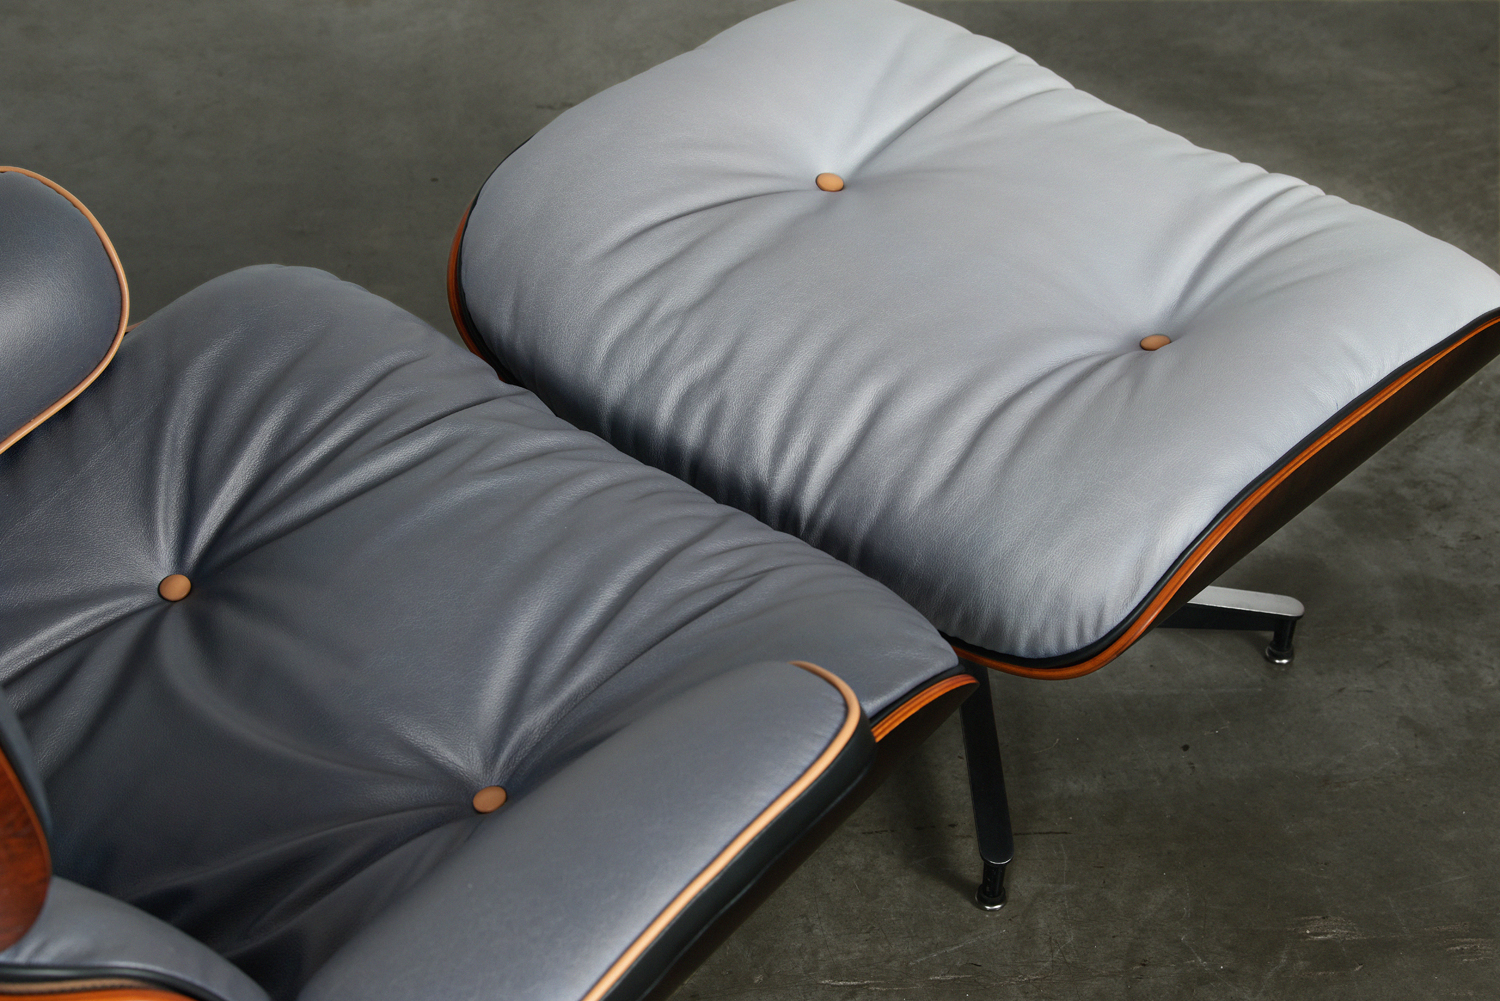 reed art department parc eames lounge chair